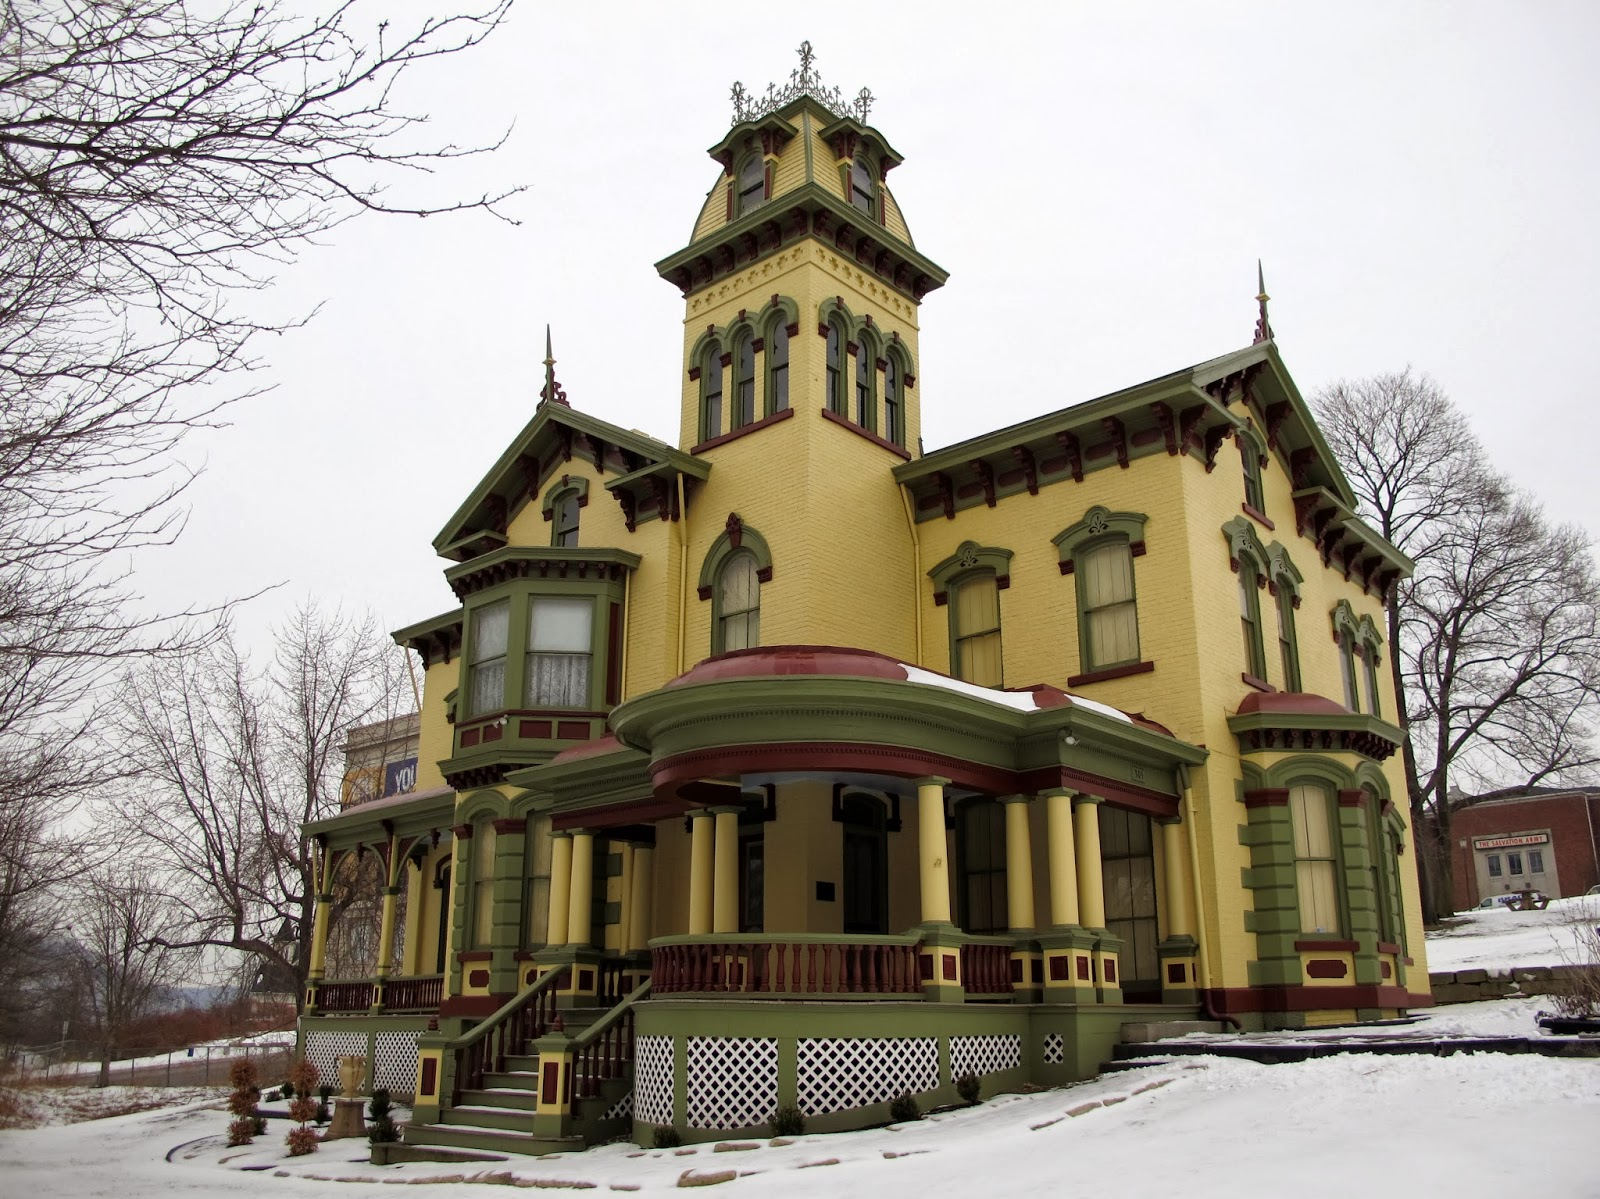 C.C. Thompson House in East Liverpool, Ohio